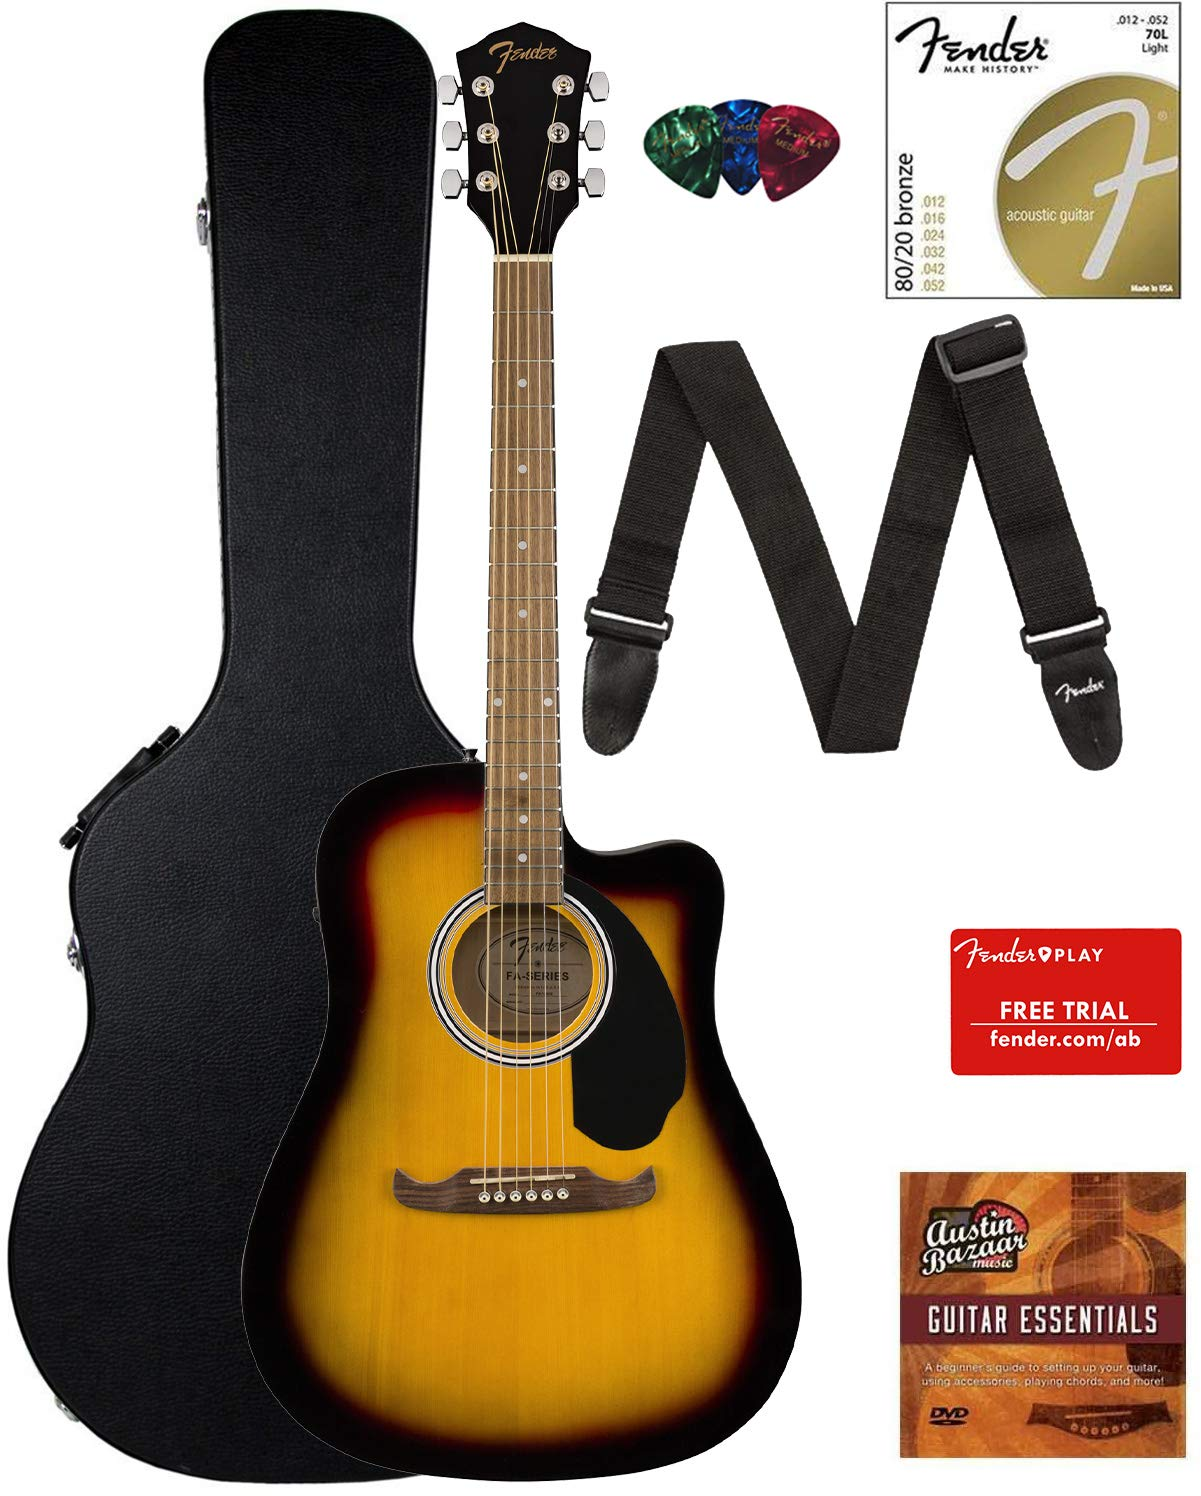 Contents of the Sunburst Fender FA-125CE Dreadnought Cutaway AEG Bundle with Hard Case